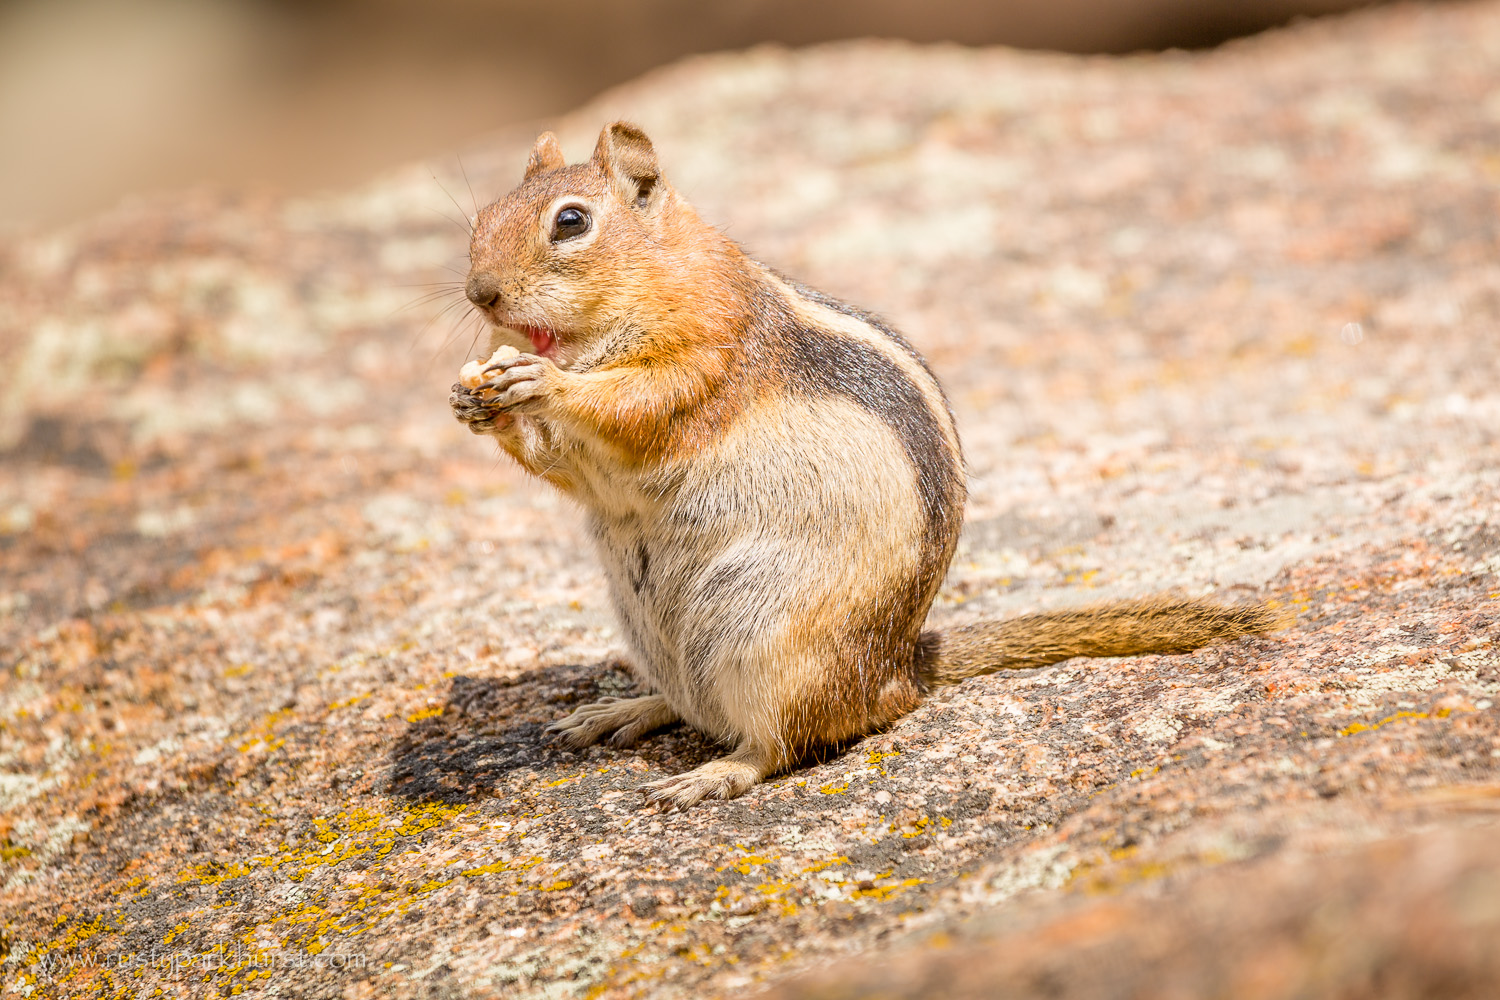 Chipmunks (or are they ground squirrels?) were abundant along the trail and at the lake.